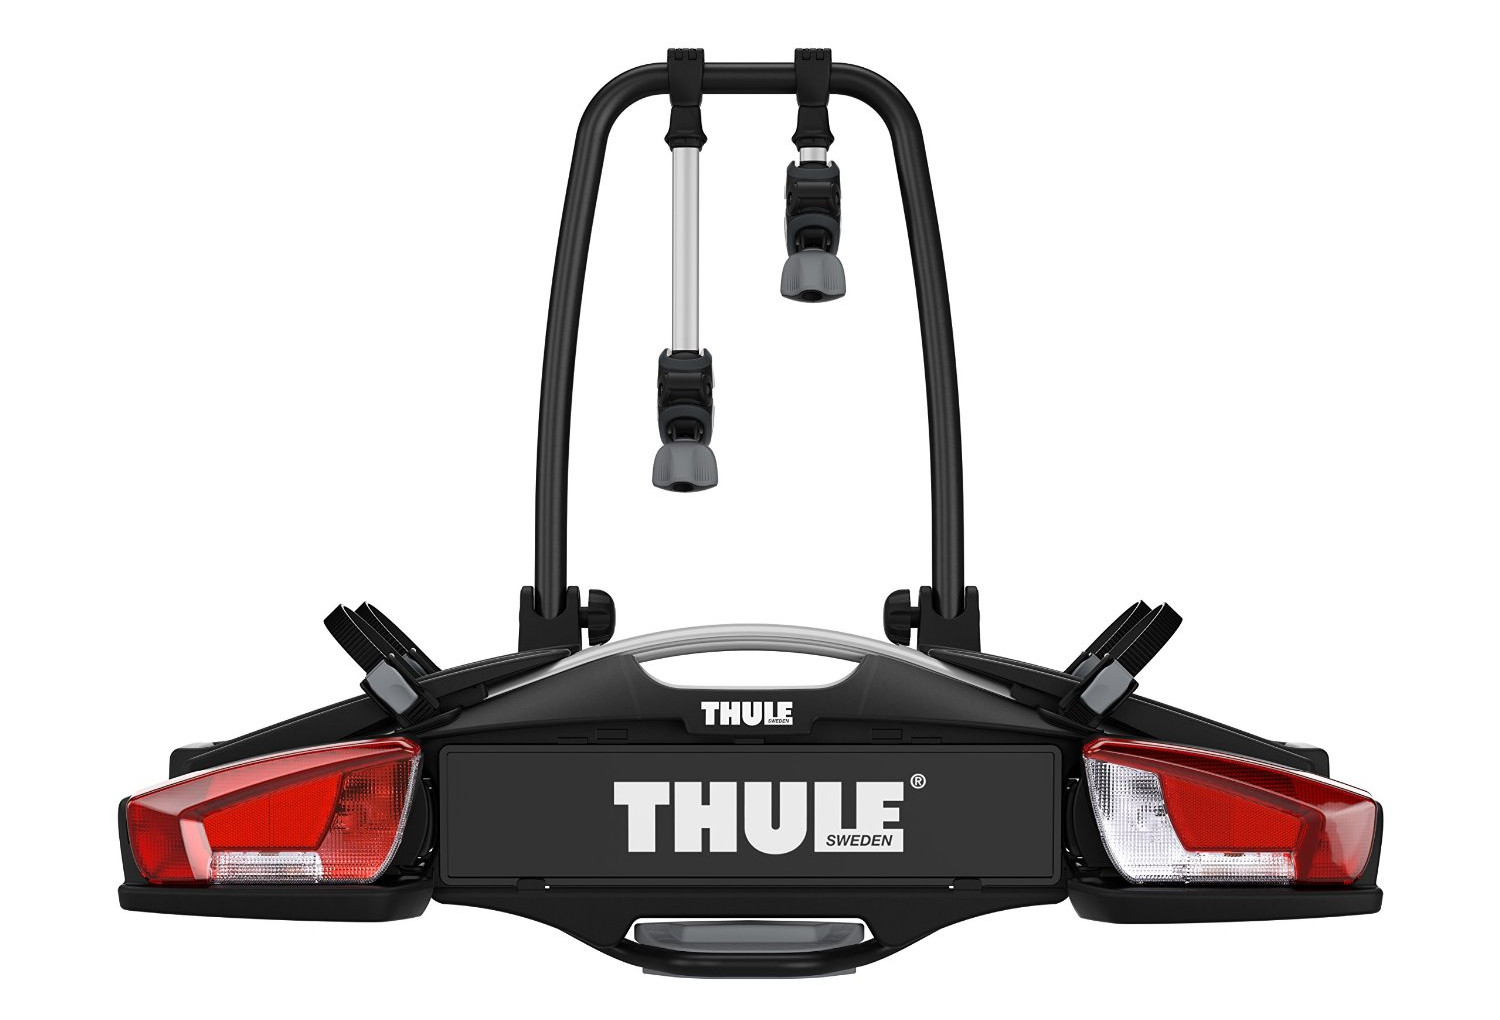 thule porte v lo velocompact 924 2 v los. Black Bedroom Furniture Sets. Home Design Ideas